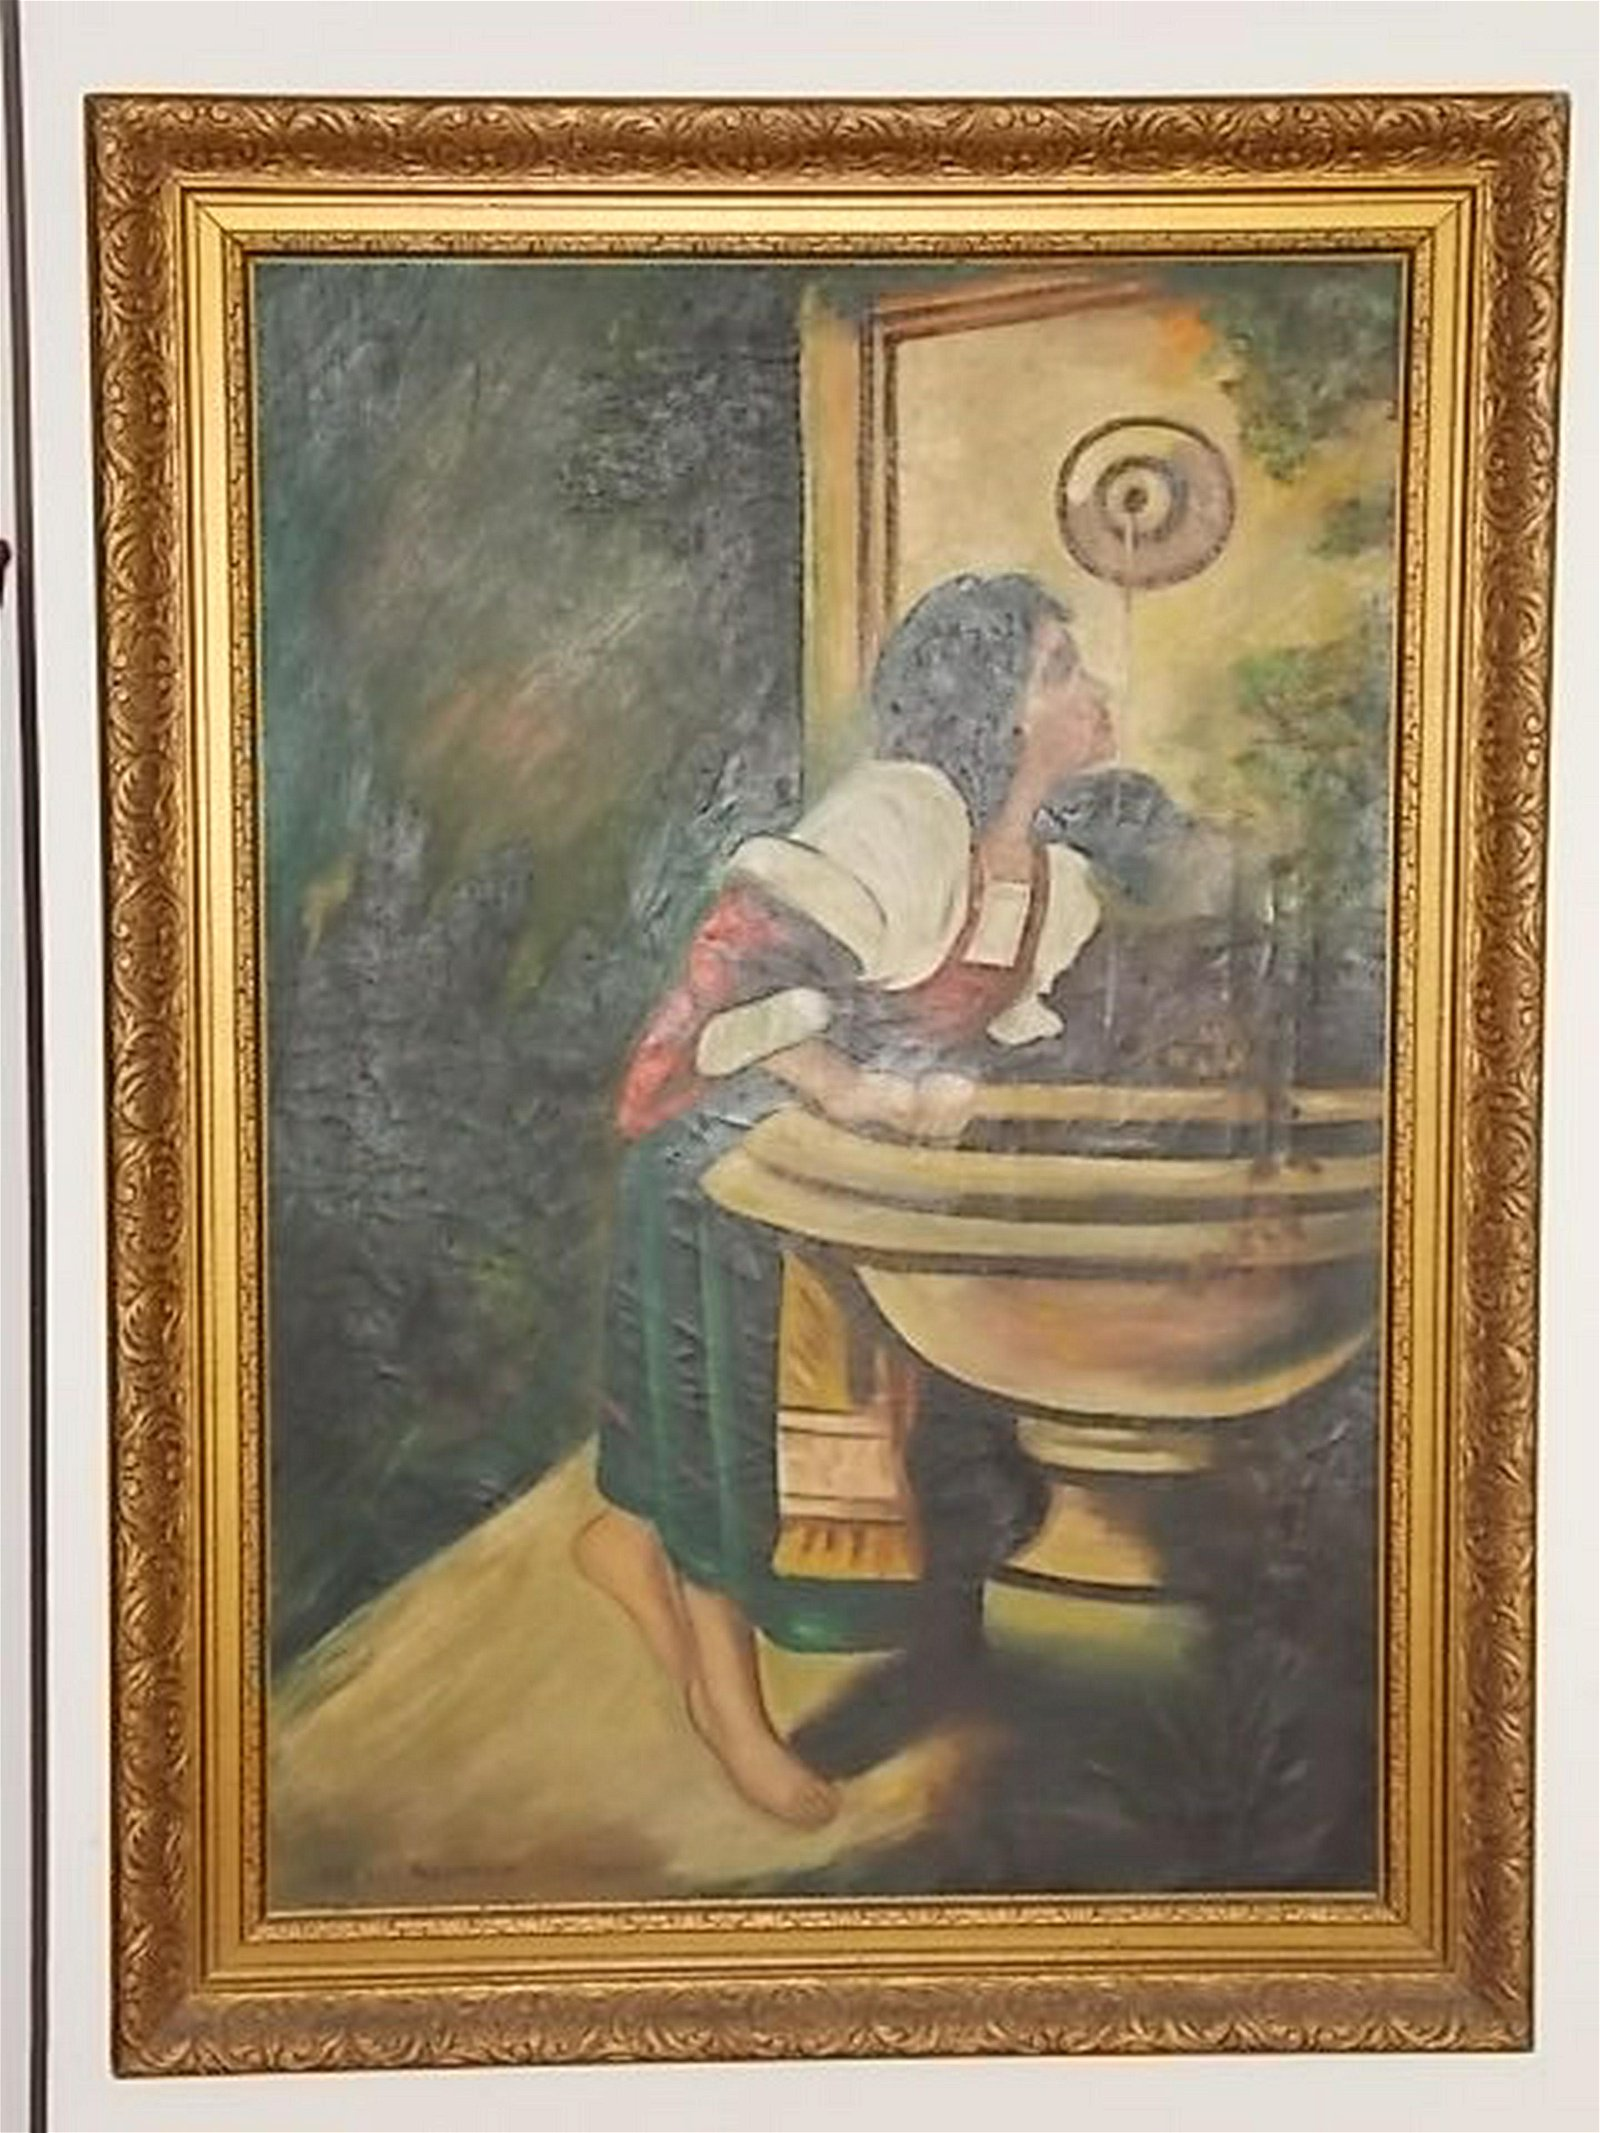 ANTIQUE L. TRESTMAN OIL ON CANVAS PAINTING OF WOMAN